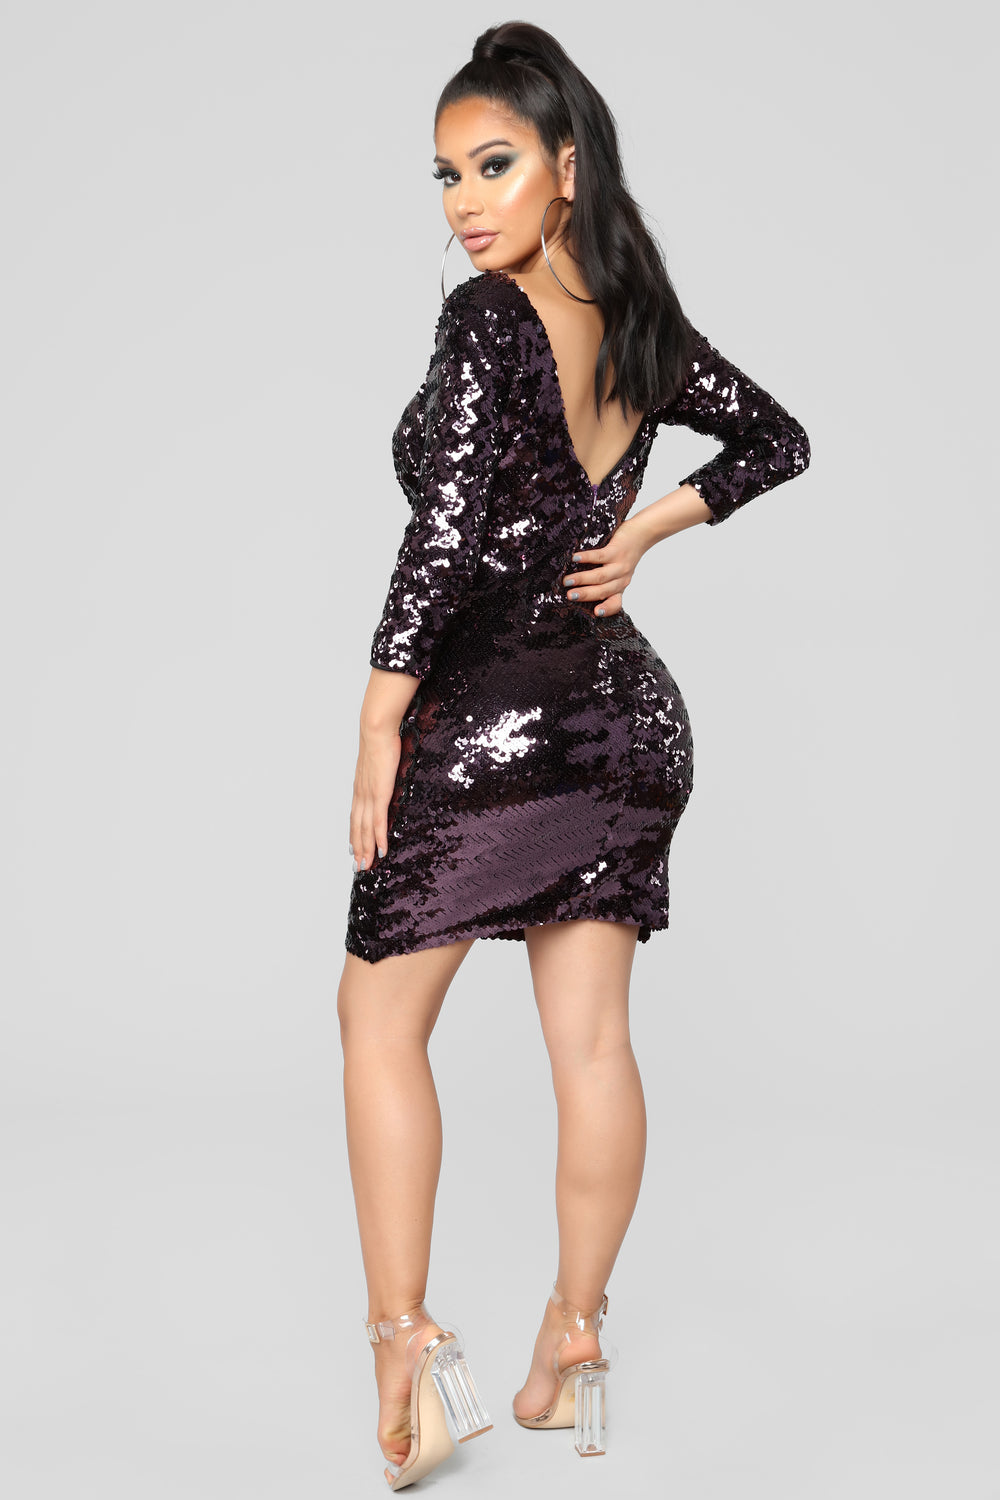 Feel The Love Midi Dress - Eggplant